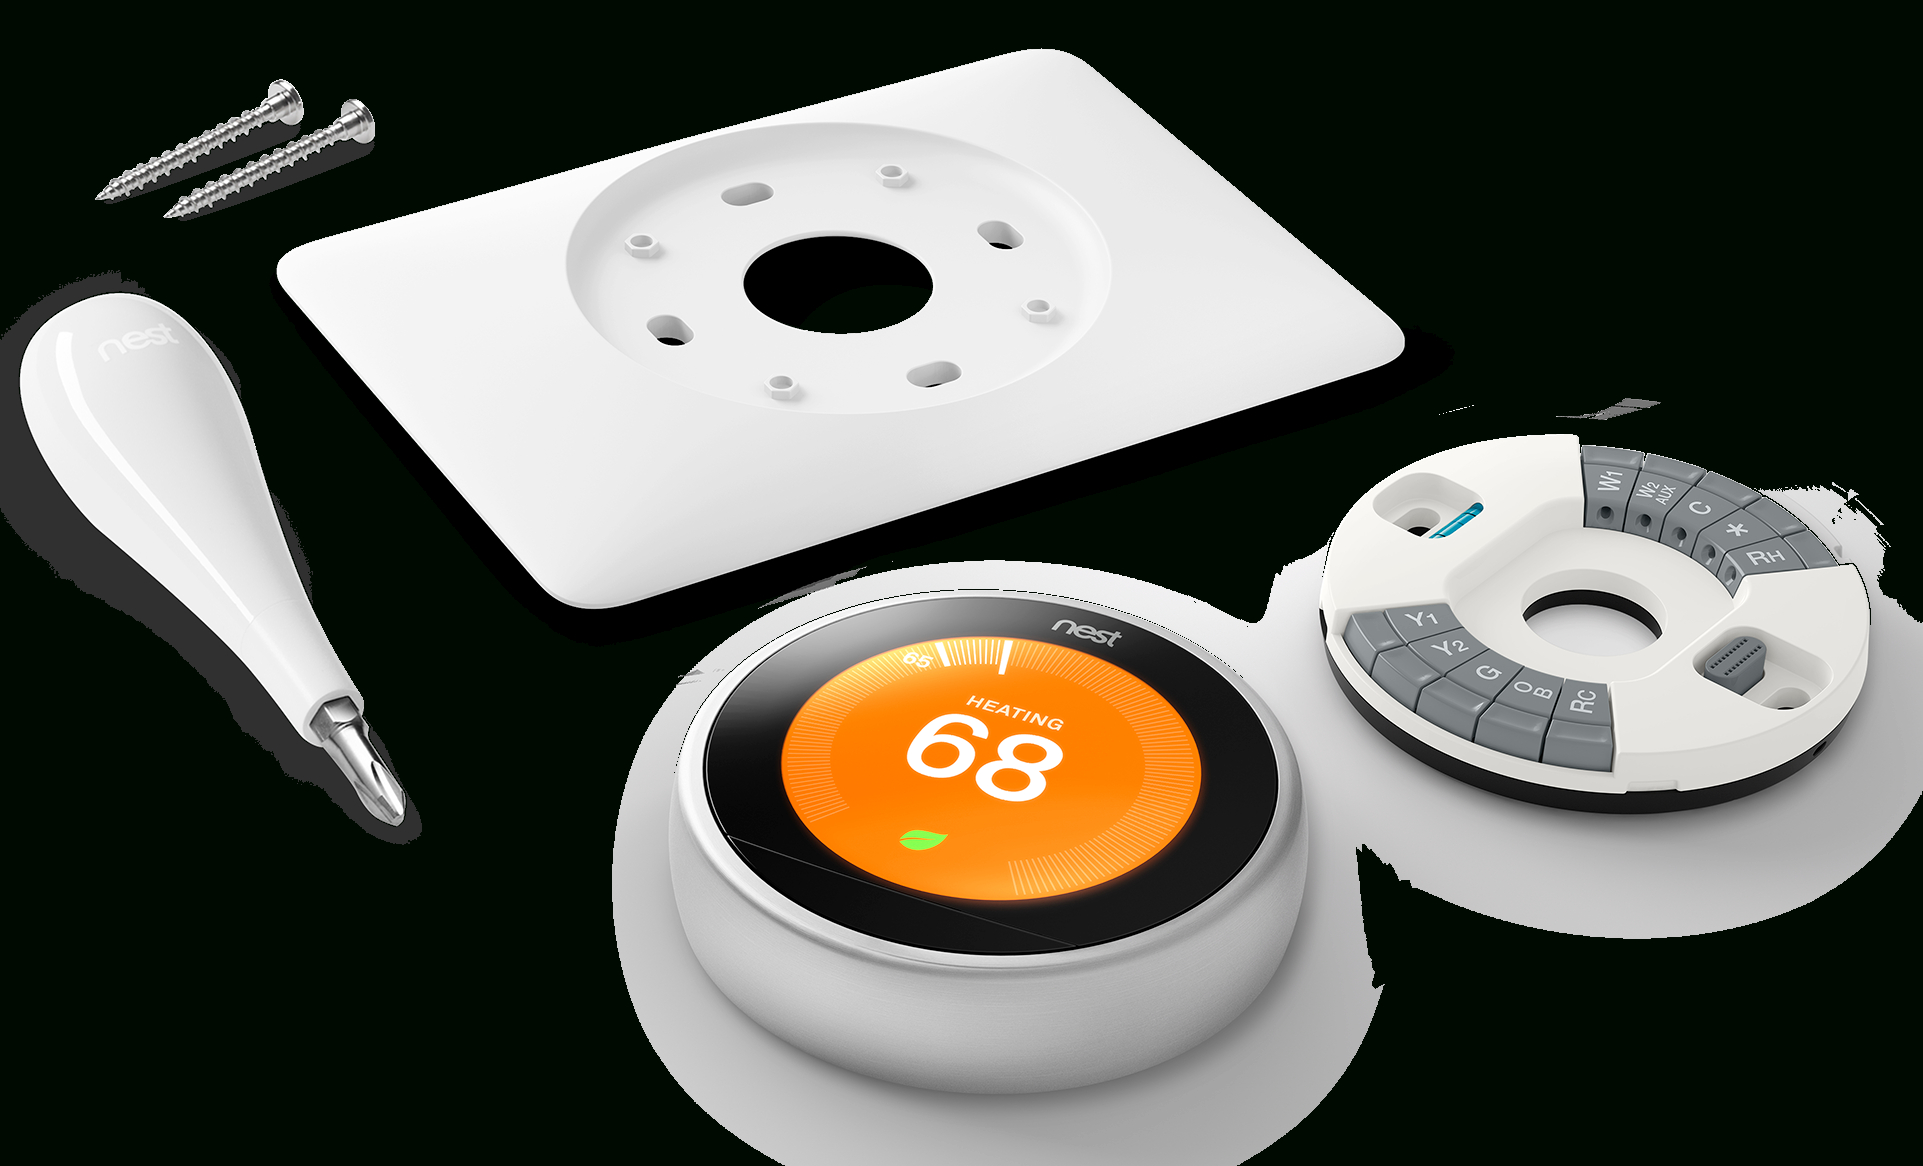 How To Install Your Nest Thermostat - Nest Gen3 Thermostat Wiring Diagram